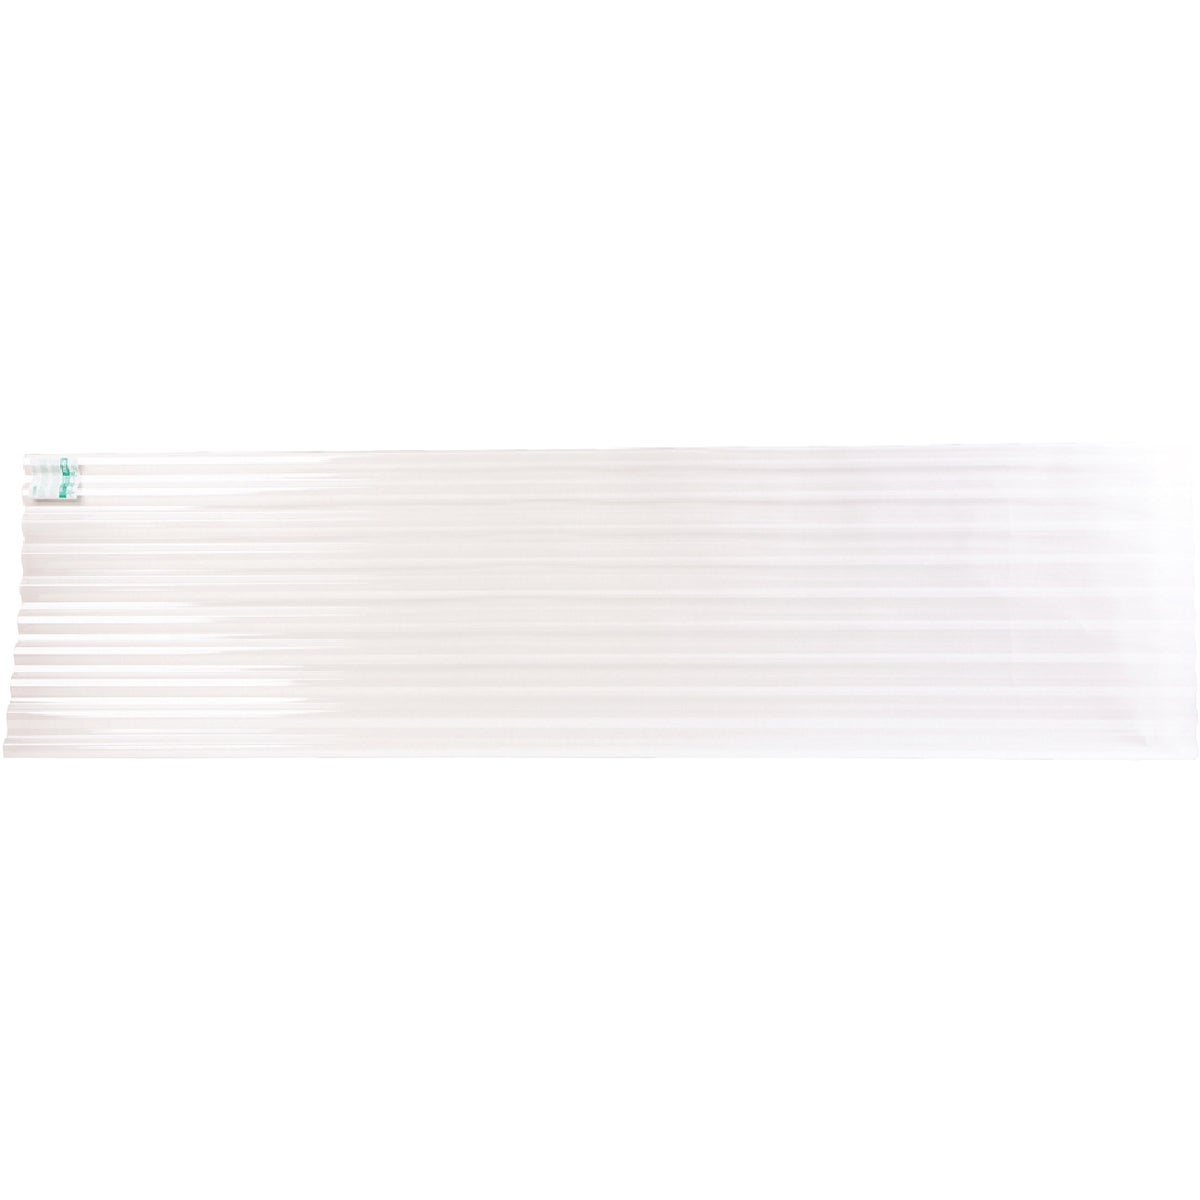 8' CLR CORRUGATED PANEL